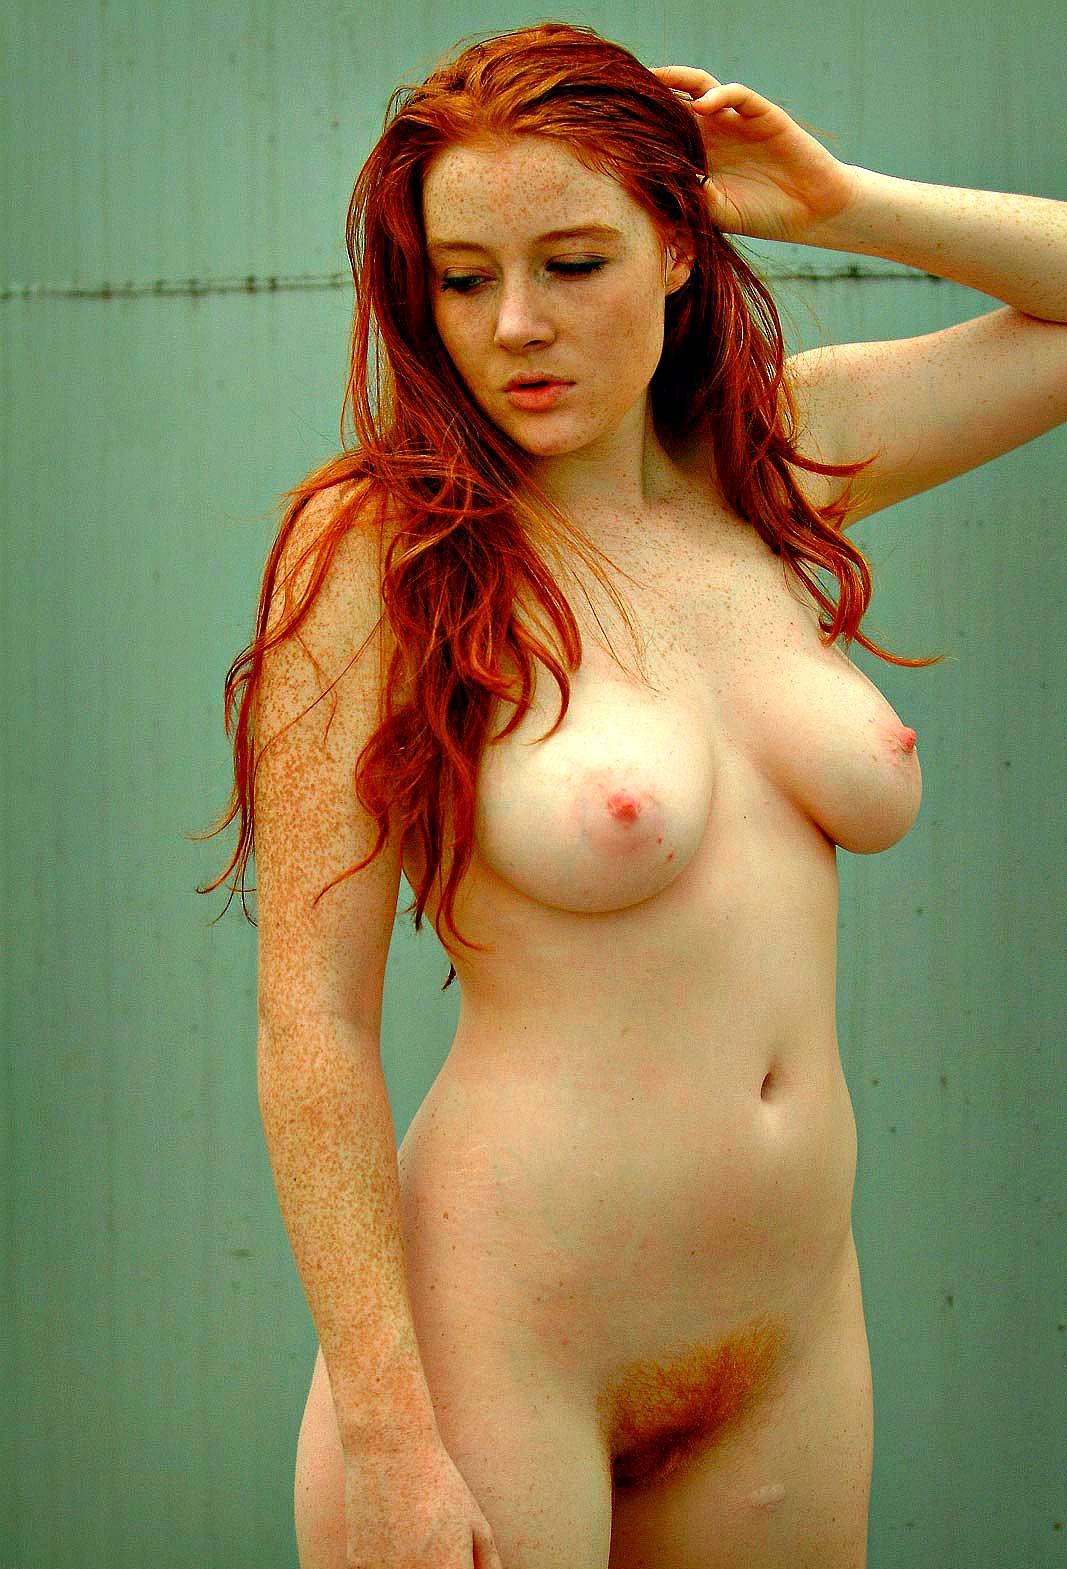 dragonlance porn huge monsters cocks are waiting you Nicebreasts Smallnipples Pinchingnupple Pale Paleskin Freckles Ginger Redhead